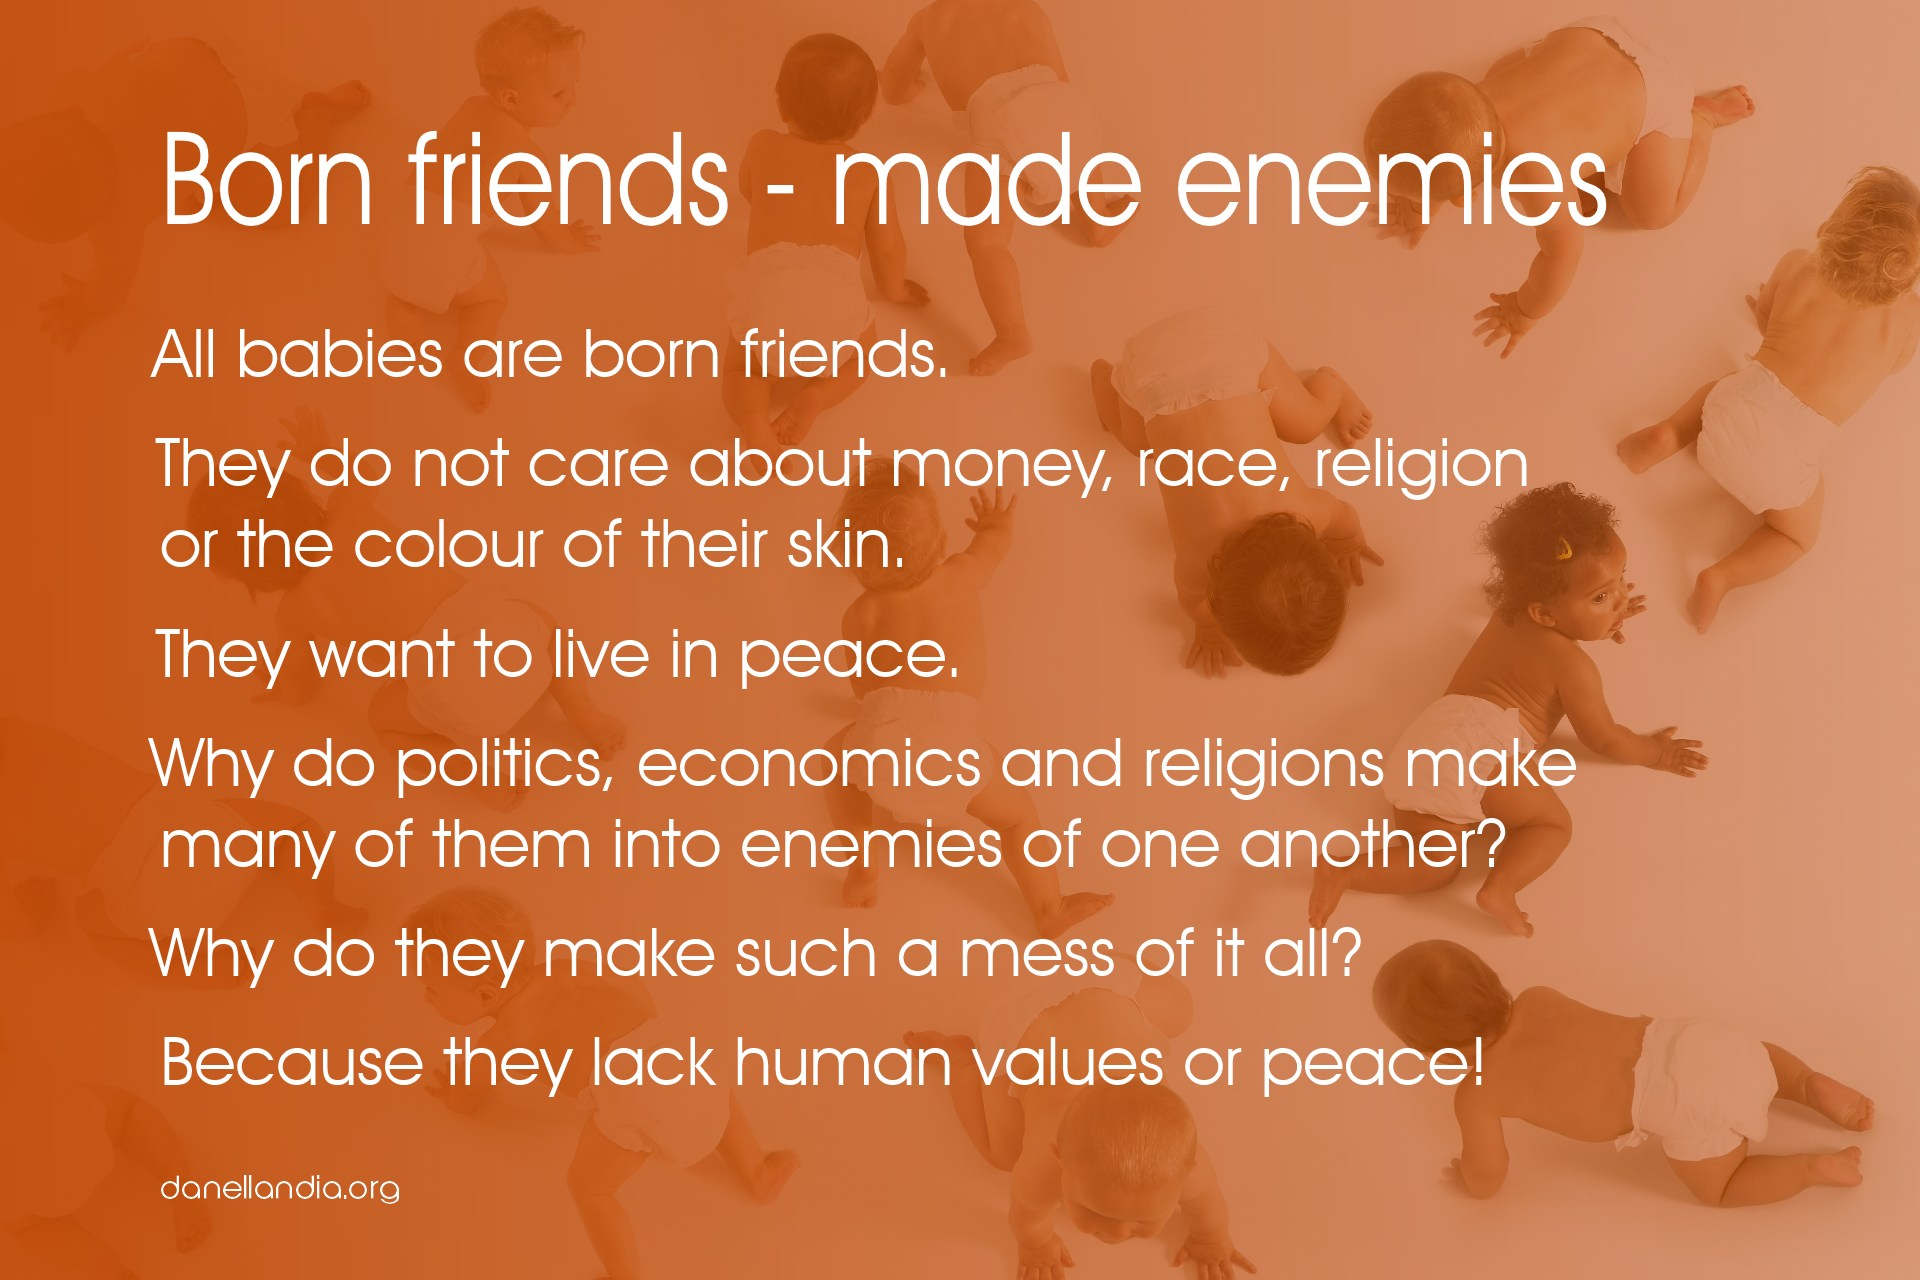 Born friends - made enemies